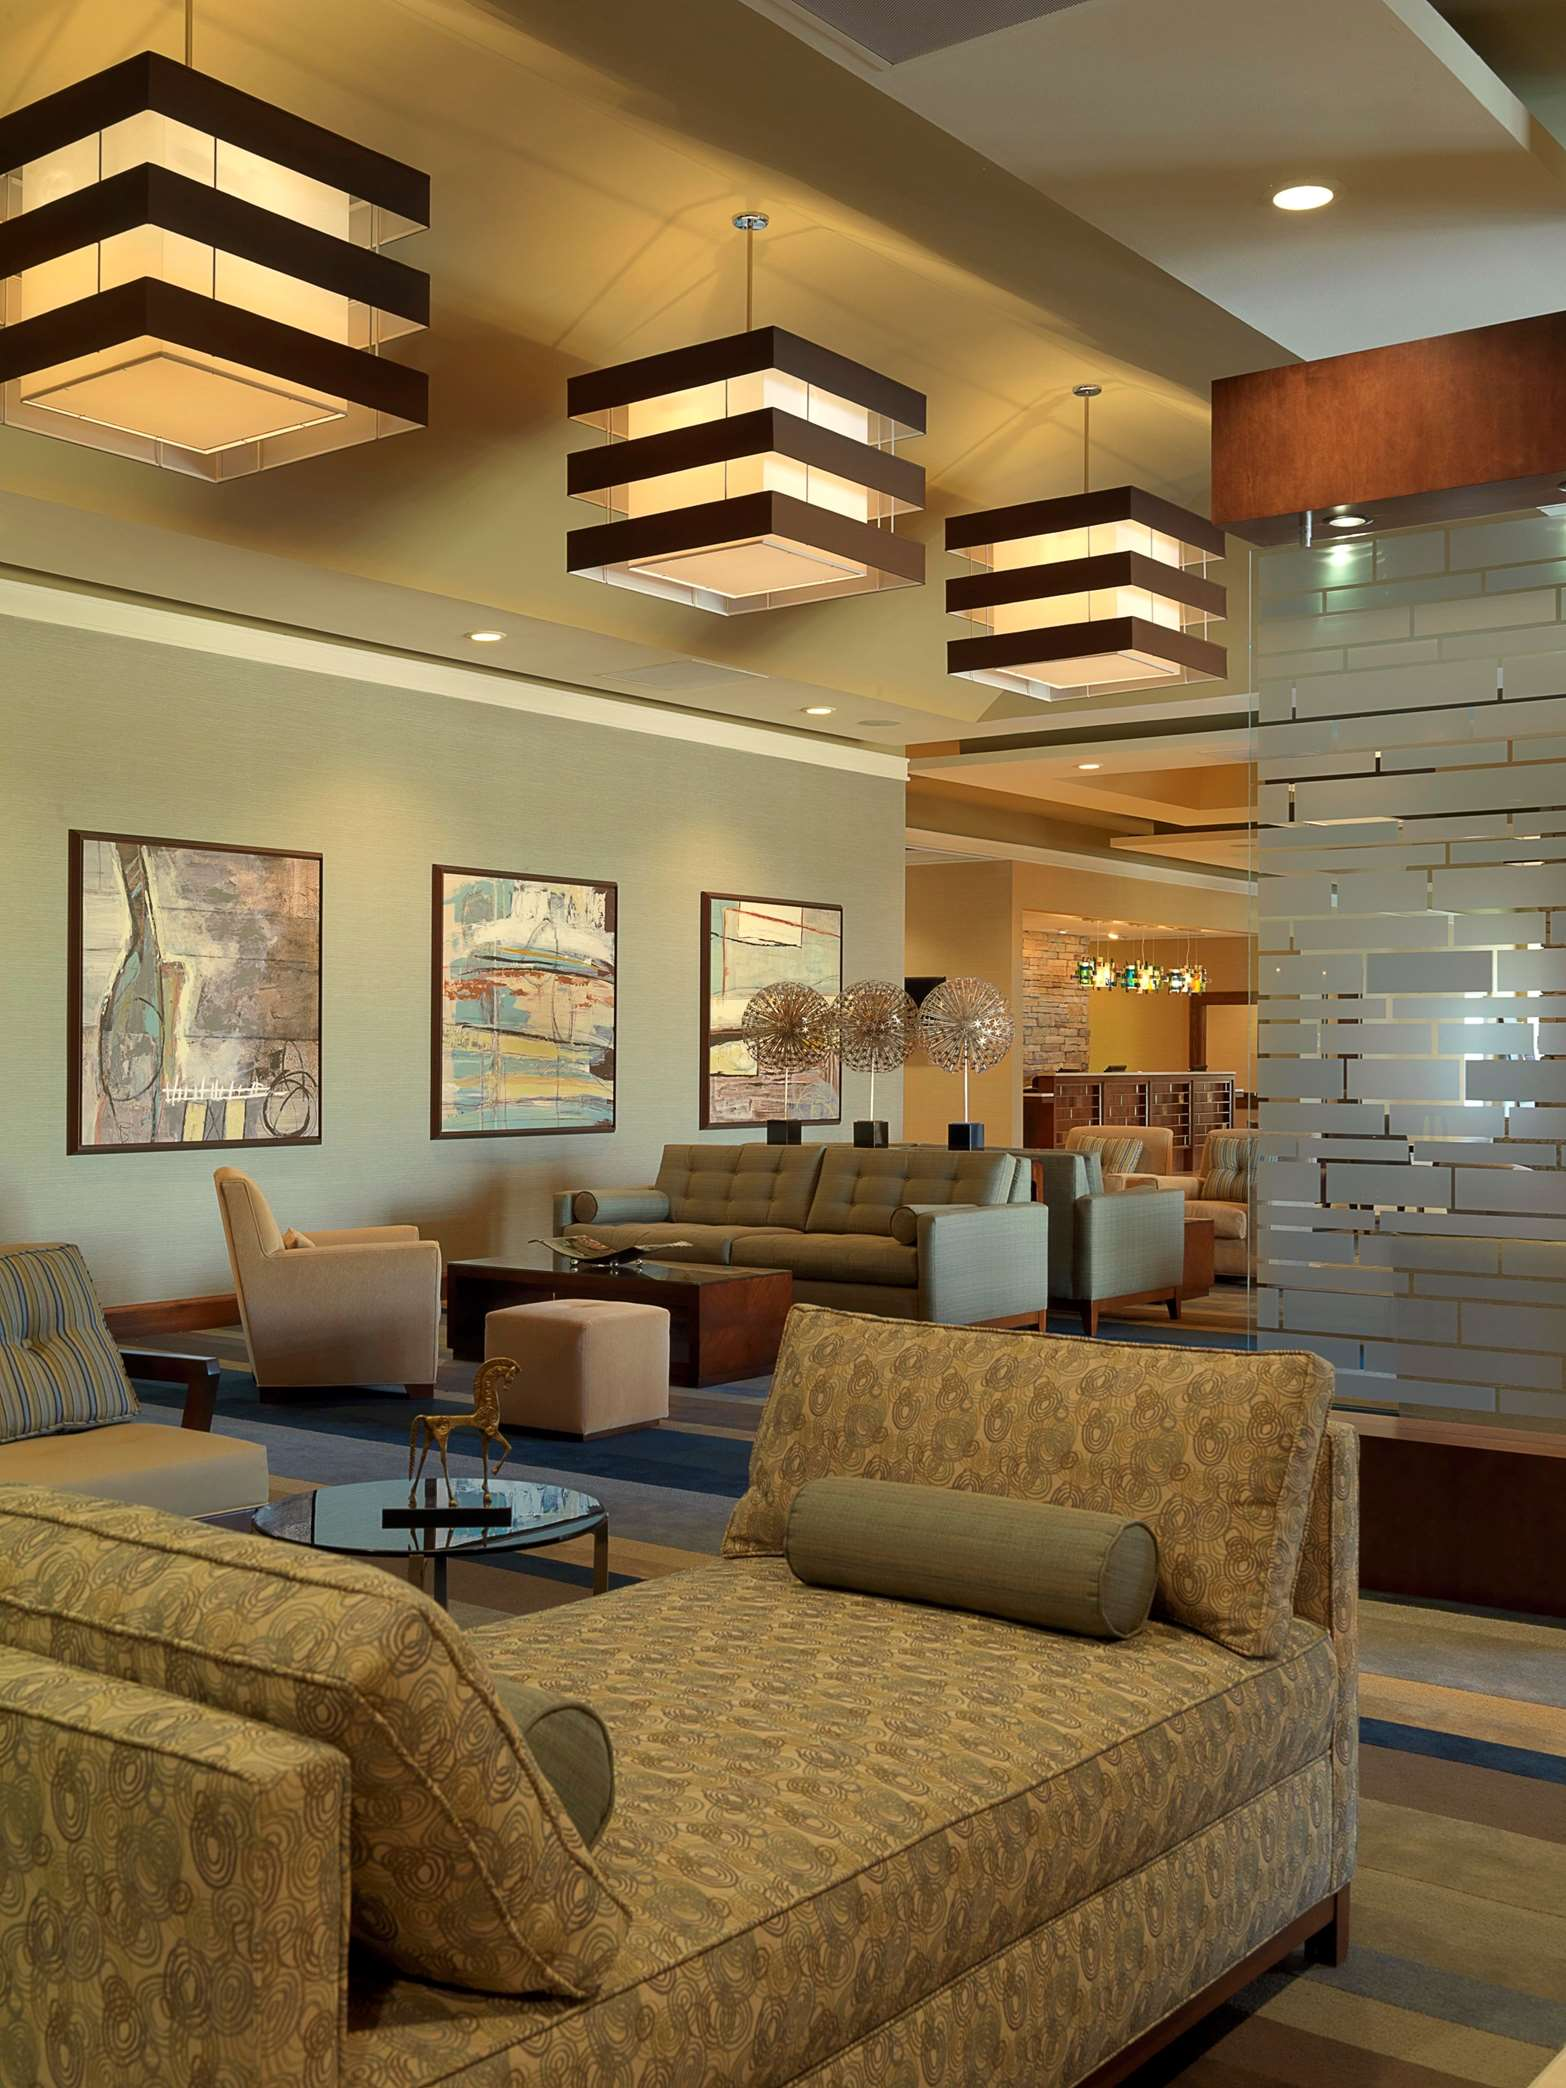 DoubleTree by Hilton Hotel Collinsville - St. Louis image 2